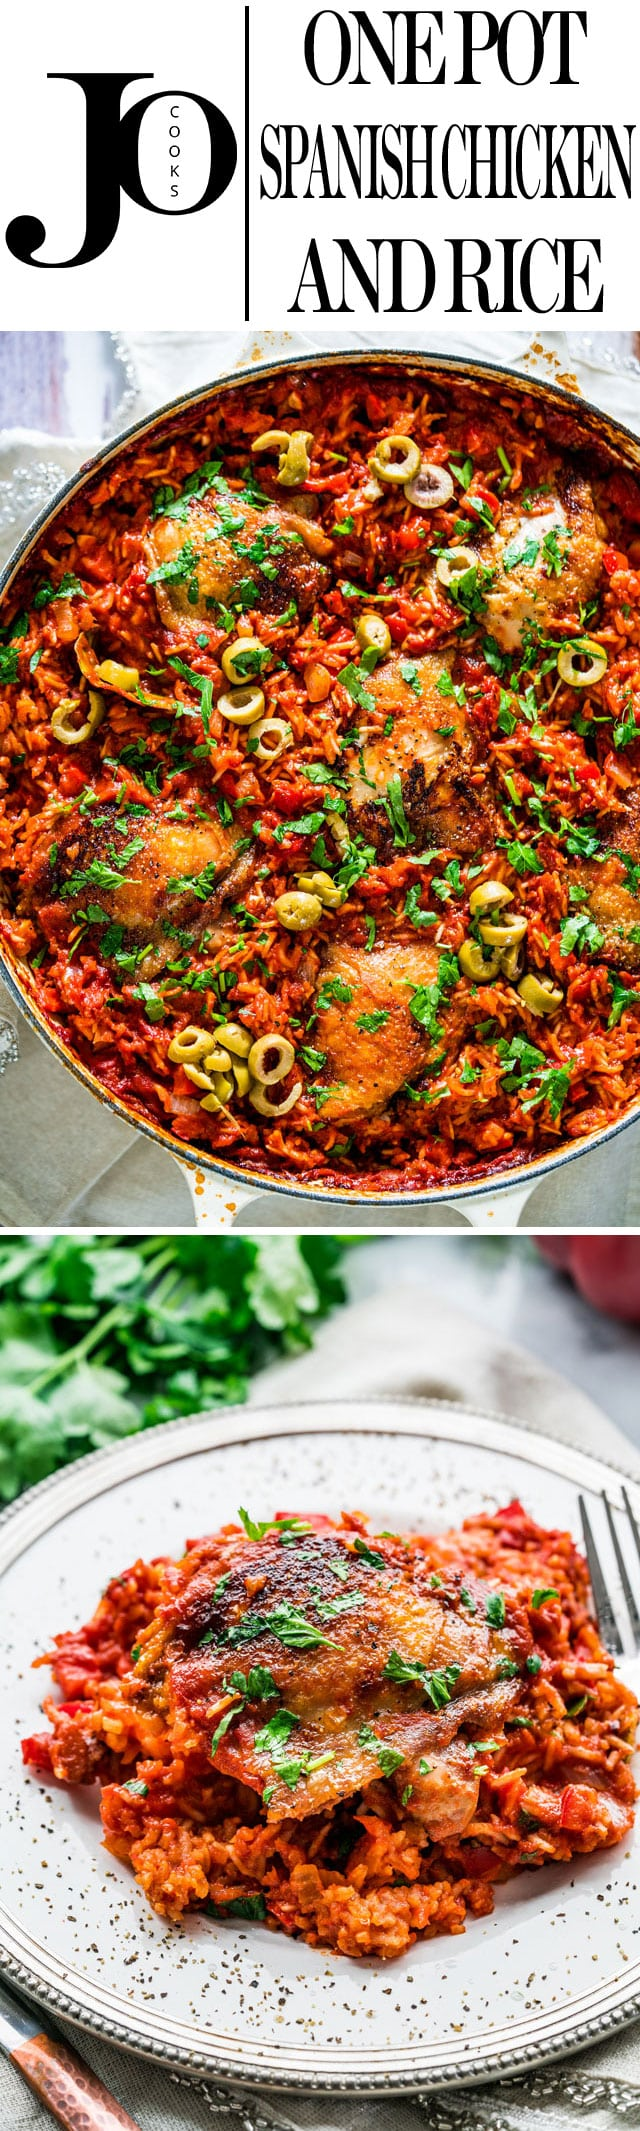 This One Pot Spanish Chicken and Rice is packed with great flavors and vibrant colors! Easy to make and all in one pot, from the stove top to the oven, dinner is ready with no fuss! www.jocooks.com #onepot